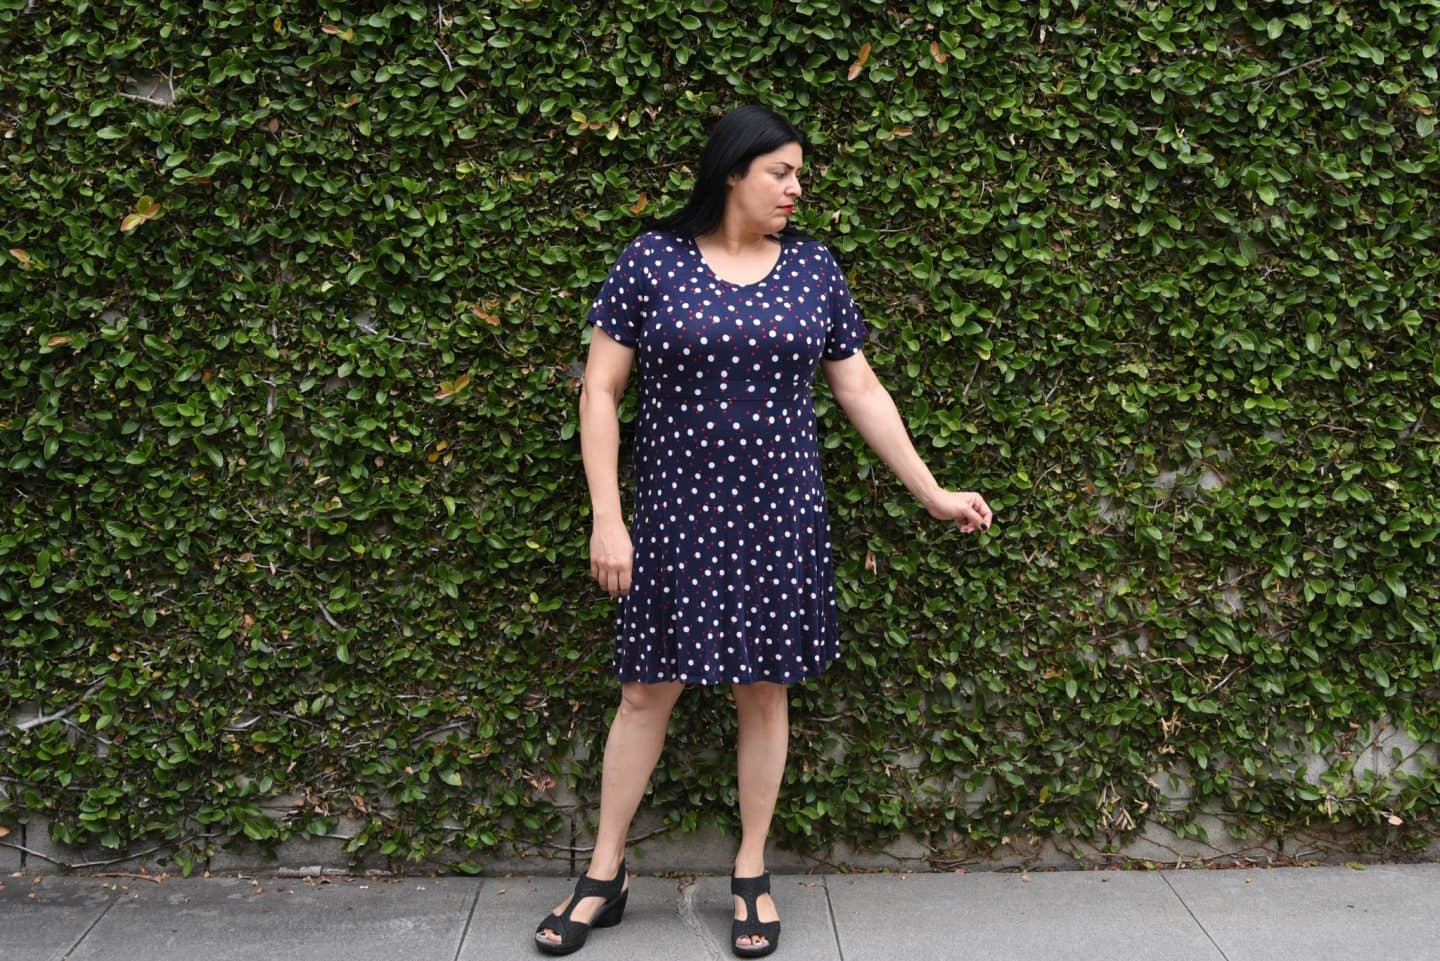 Image of woman with long black hair looking to the left standing in front of a wall covered in vines wearing an empires dress in a dark blue knit with larger white polka dots and smaller red polka dots